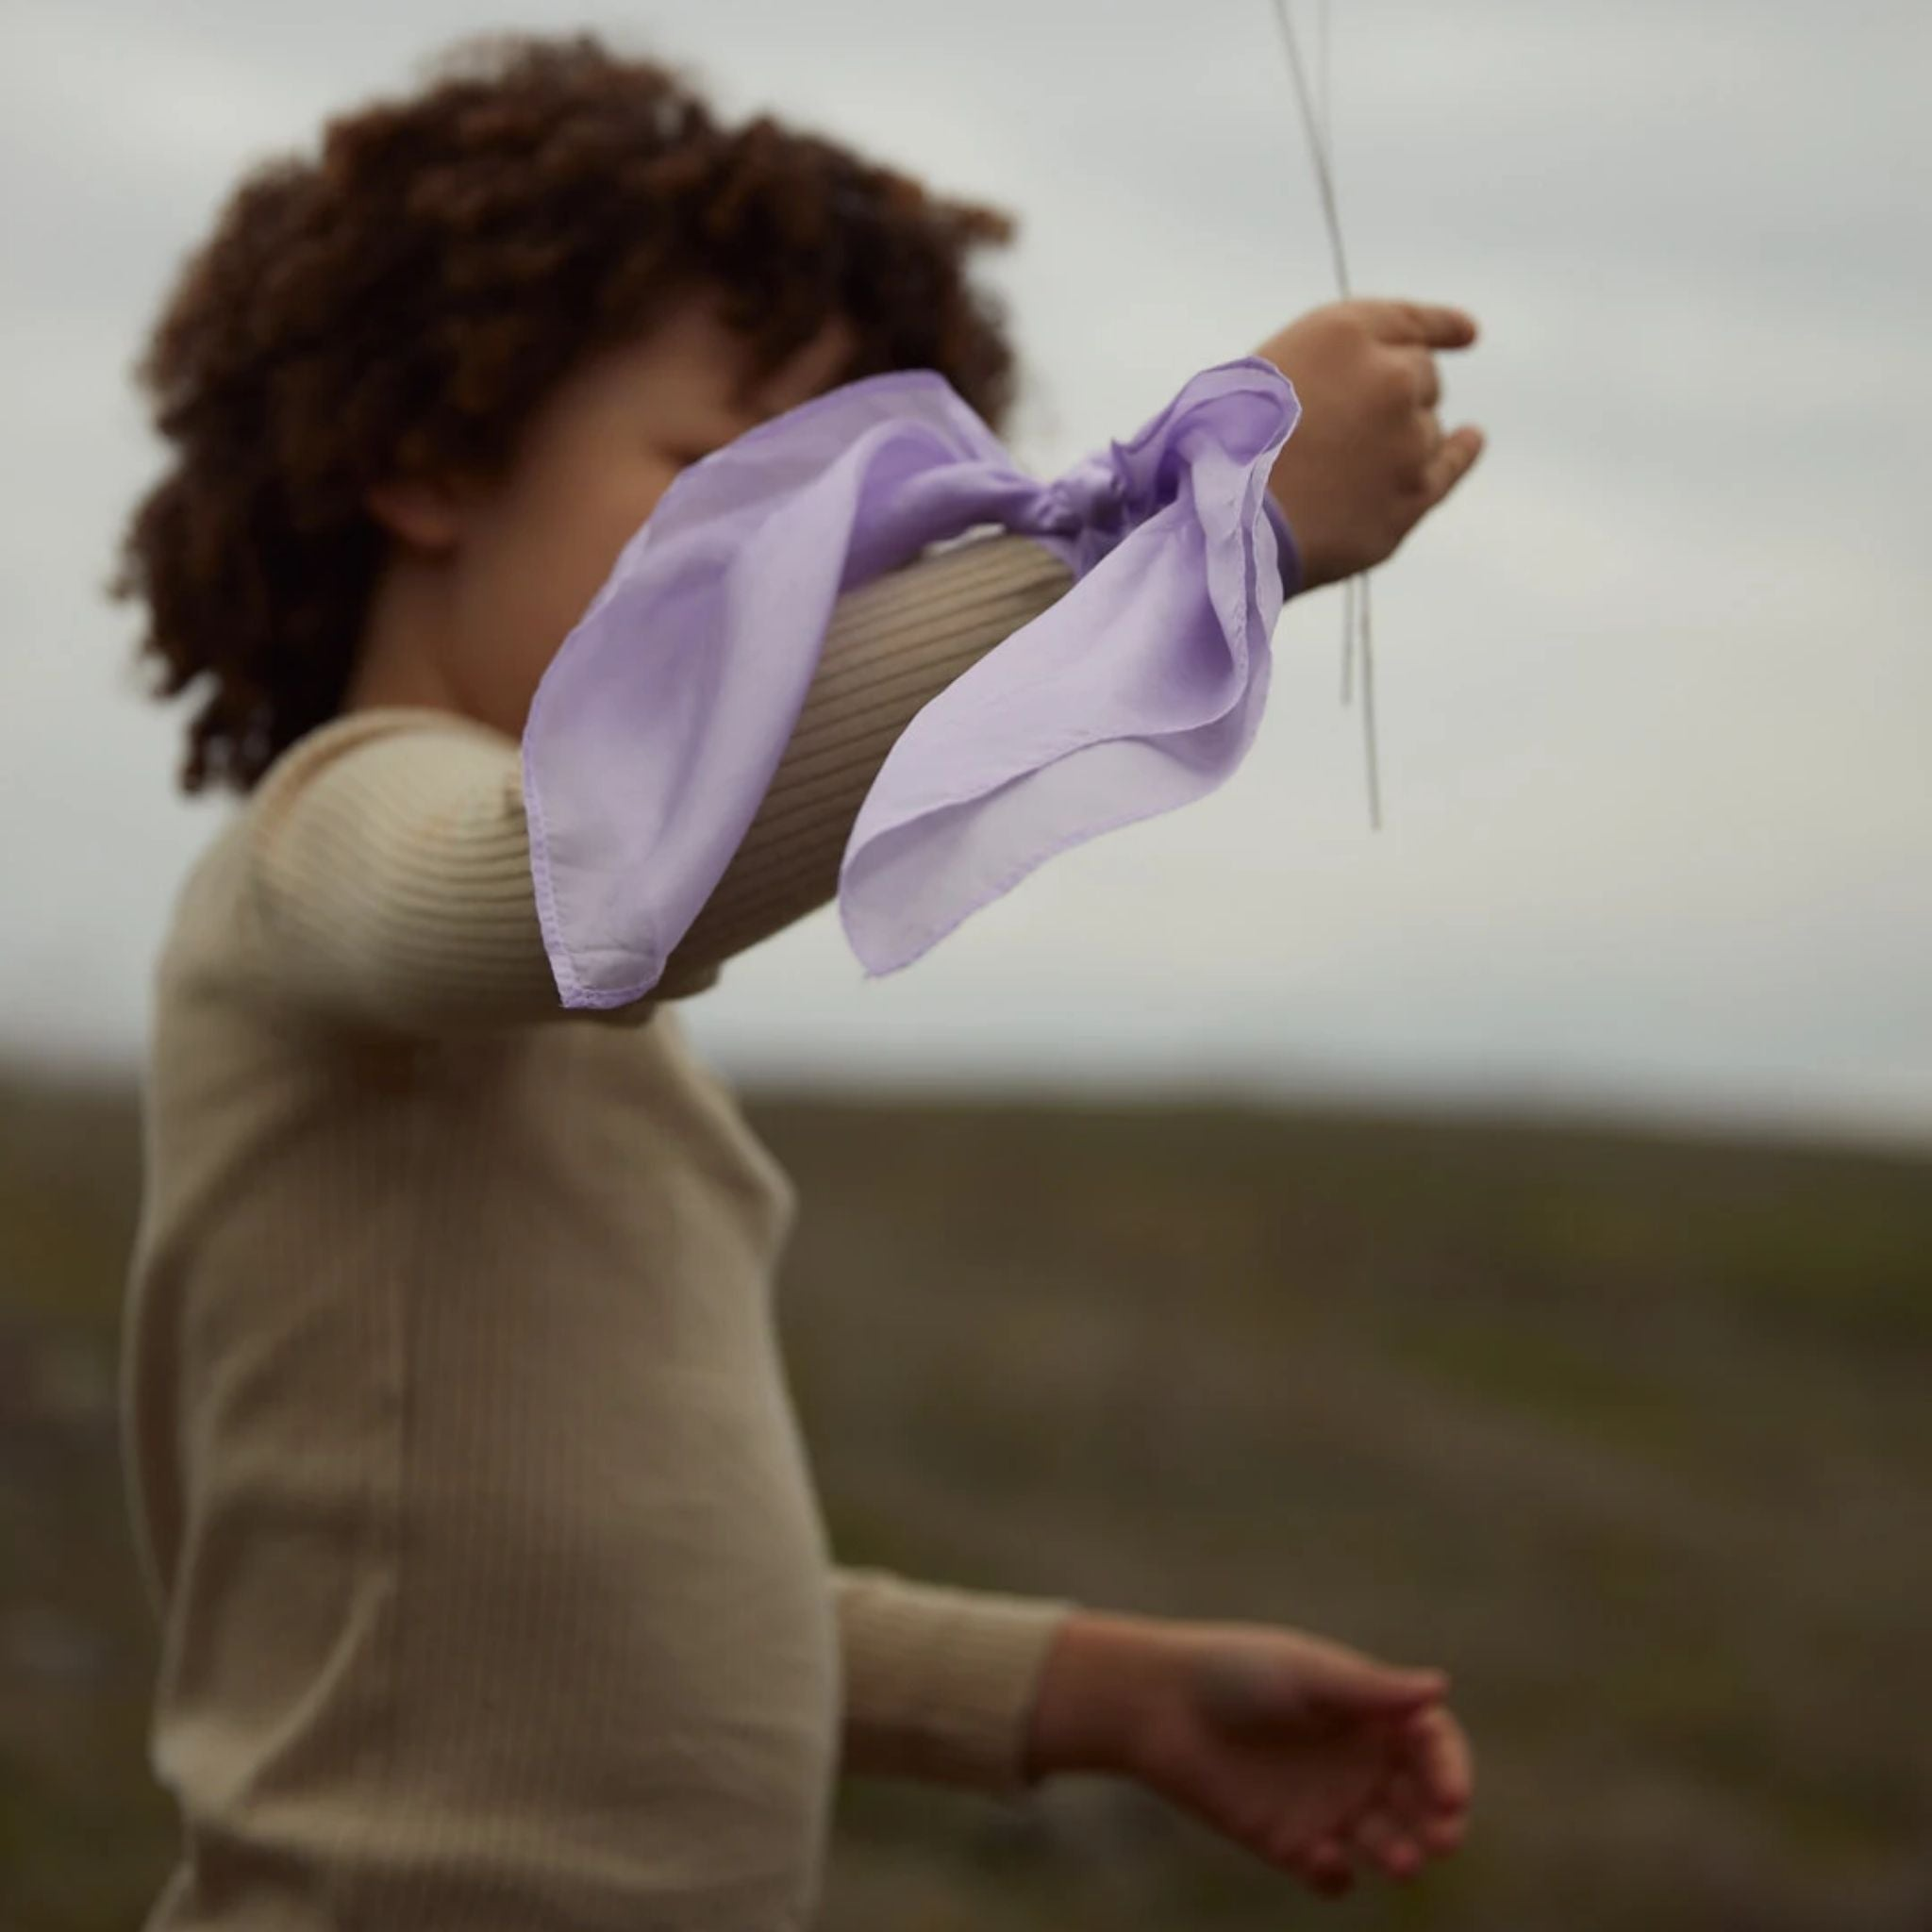 sarah's silks mini playsilks lavender tied on wrist of young child with medium brown skin and dark brown curly hair